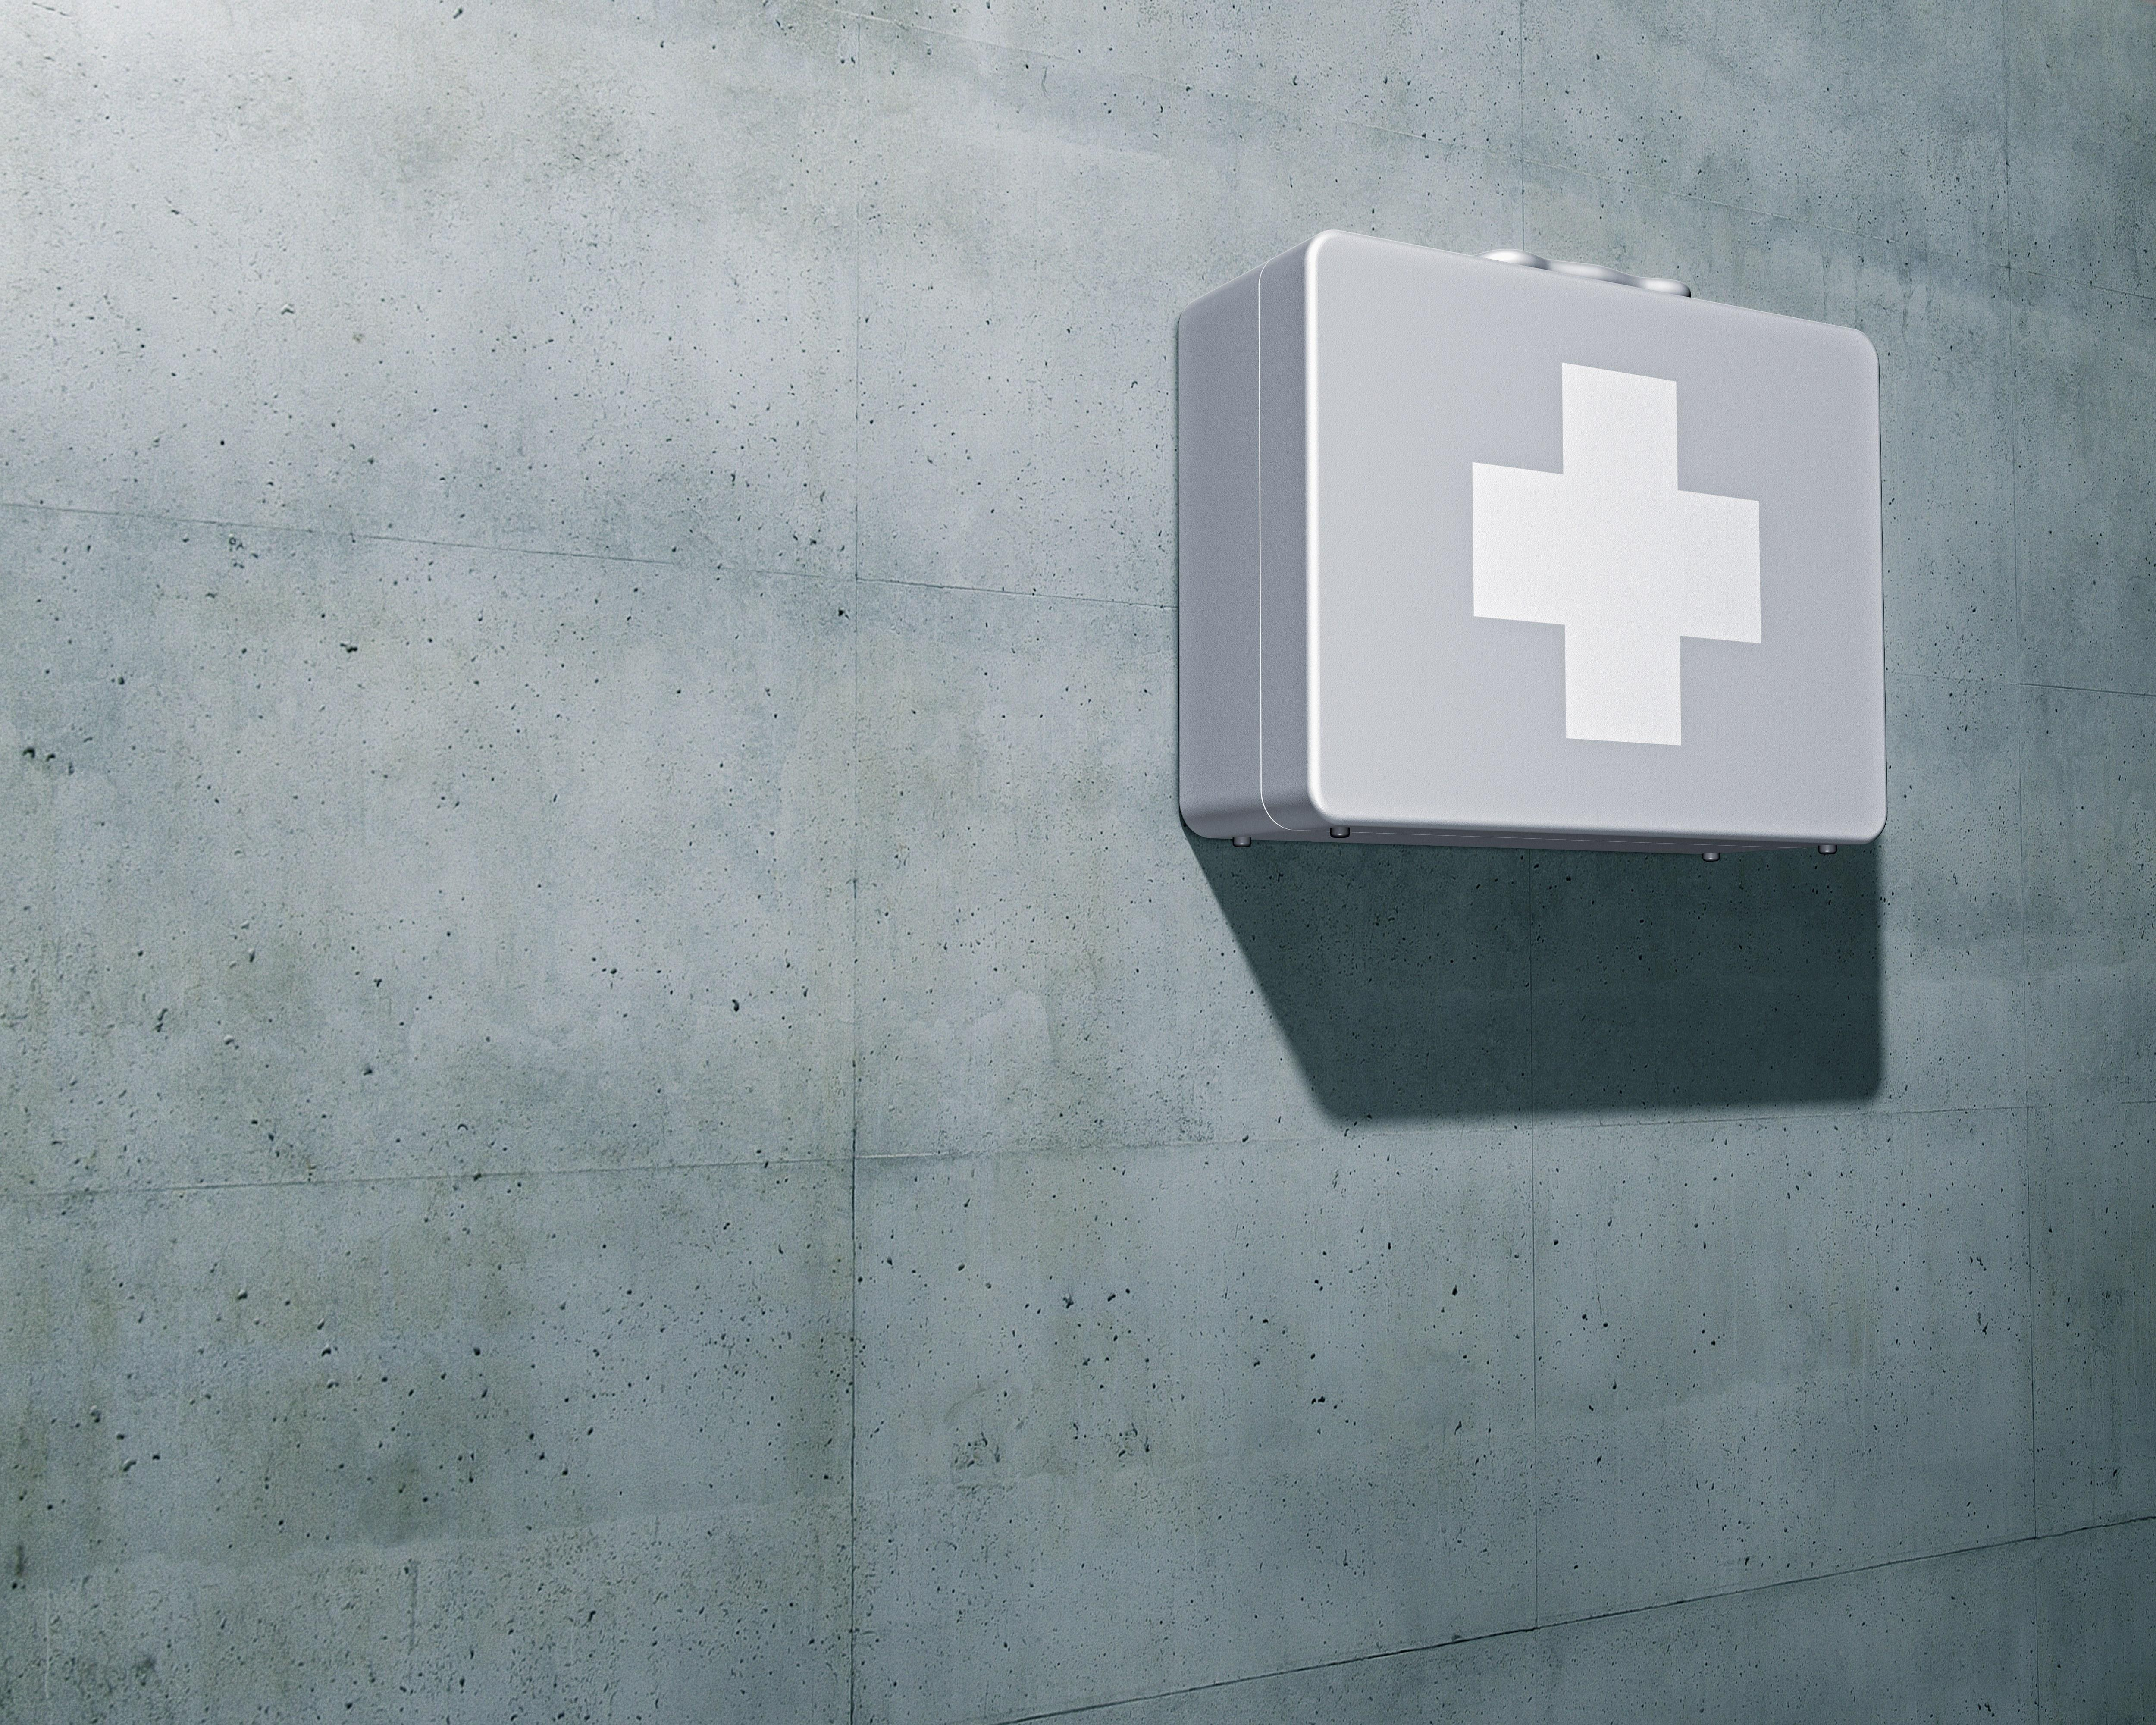 When to Go to Urgent Care vs. the ER